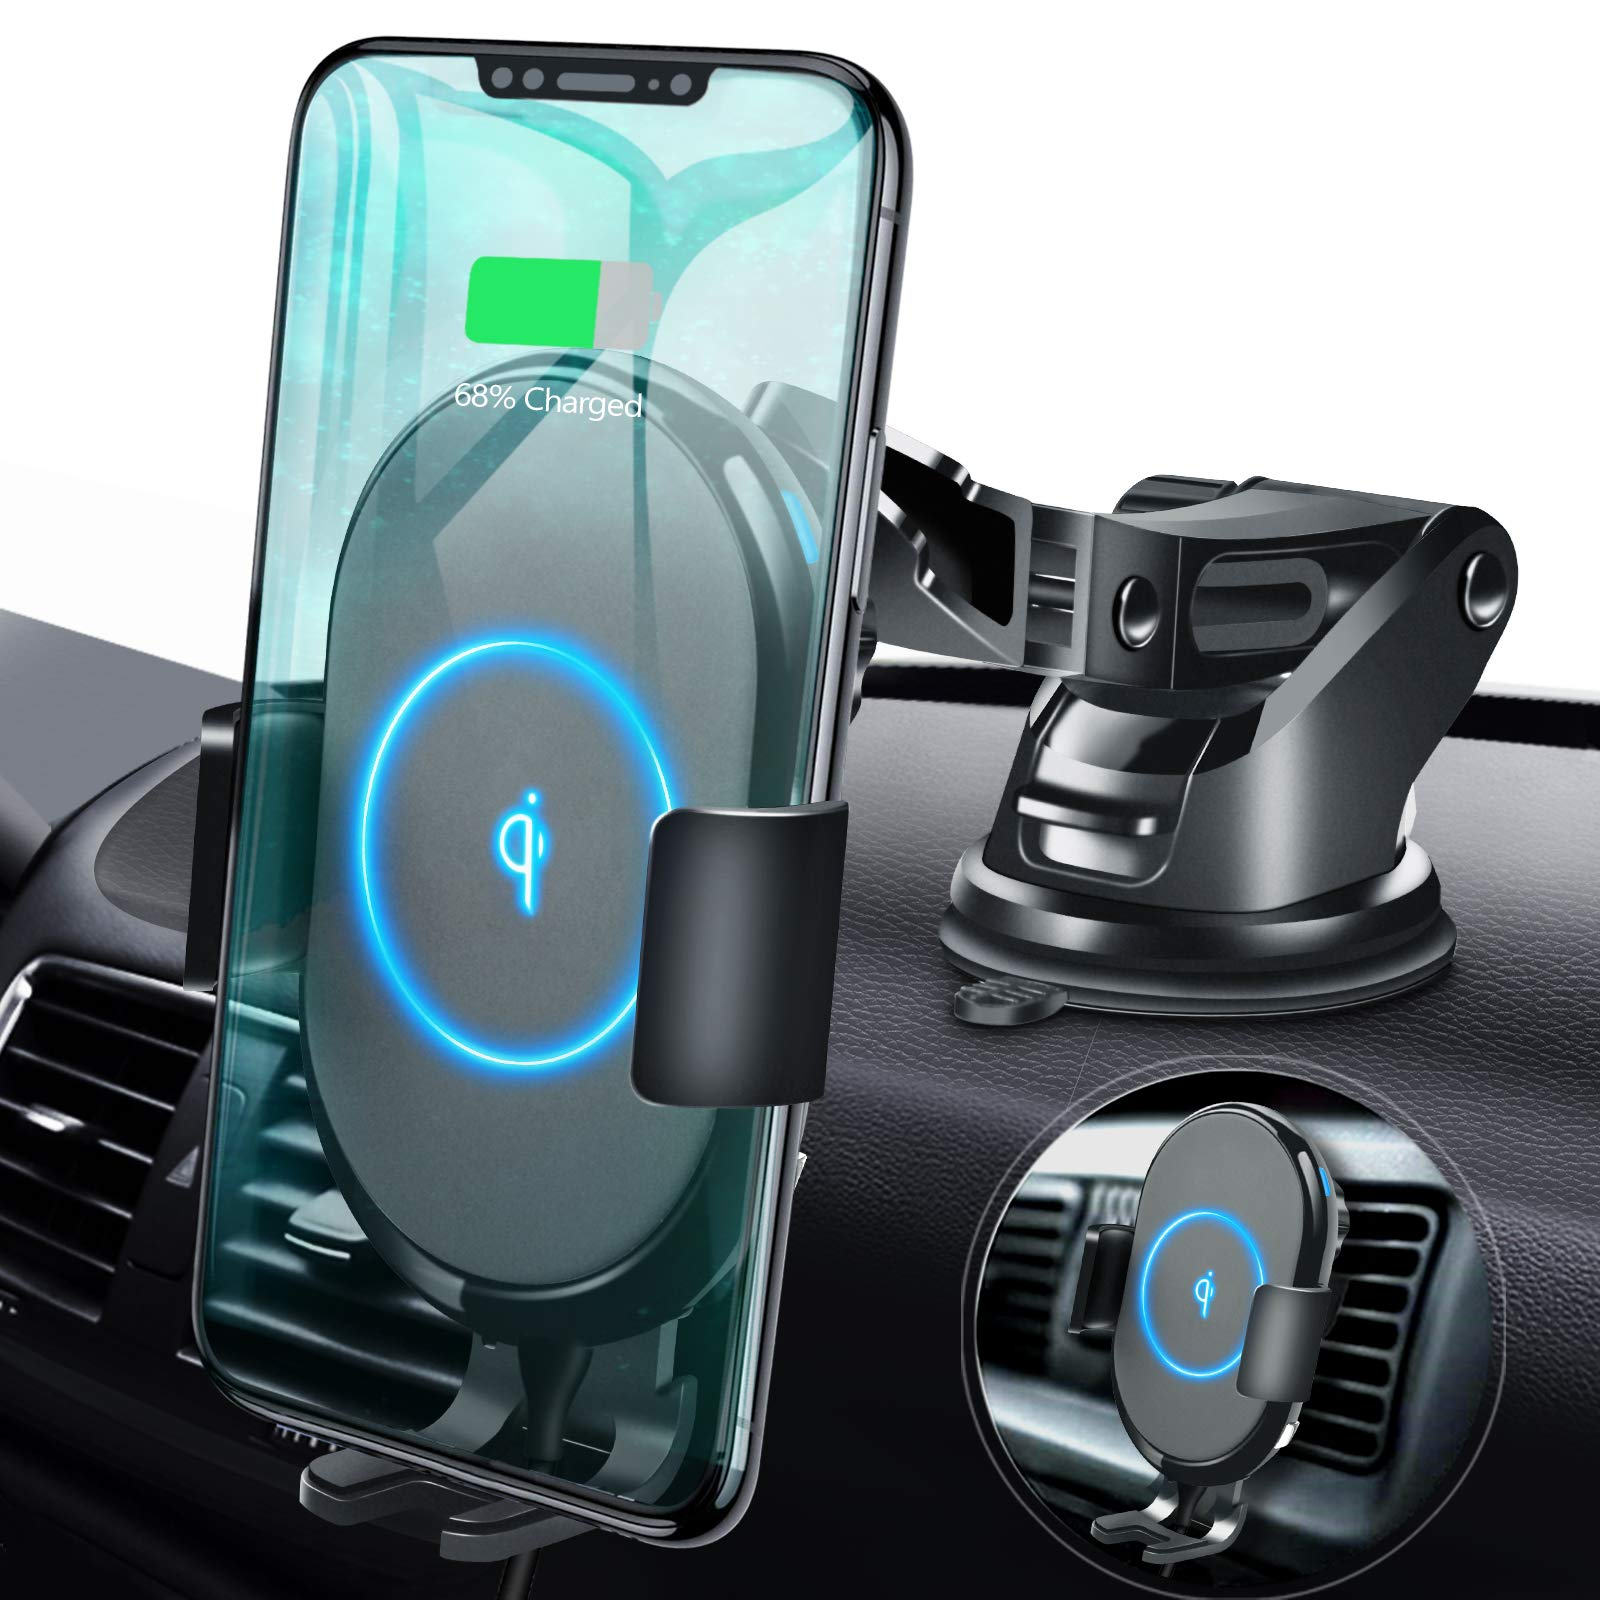 ABLEGRID Wireless Car Charger Mount, Automatic Clamping 10W/7.5W Qi Fast Charging 5W Car Mount Holder Dashboard Compatible with iPhone Xs/Xs Max/XR/X/8/8 Plus,Galaxy S10/S10+/S9/S9+/S8/S8+/Note 9/8